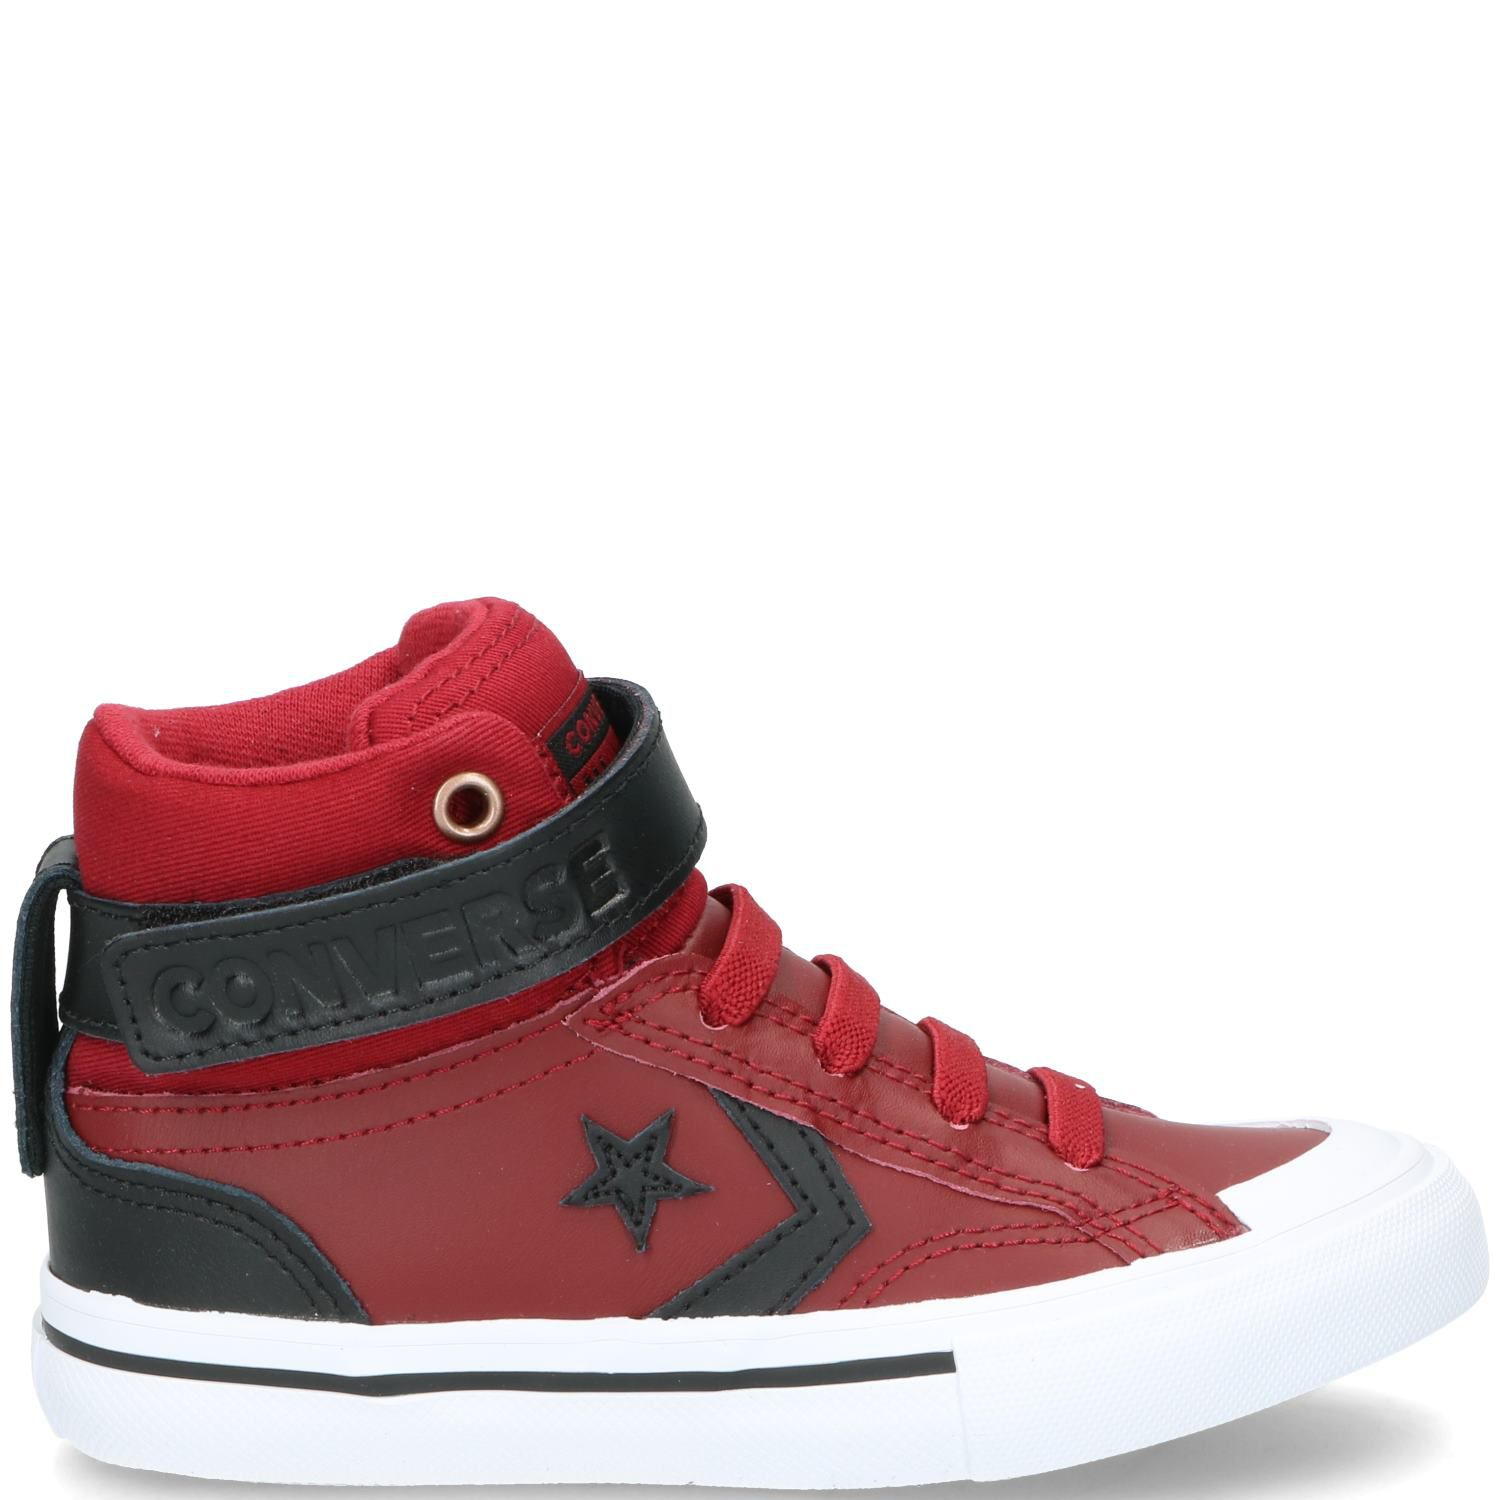 Converse All Star klittenbandschoen